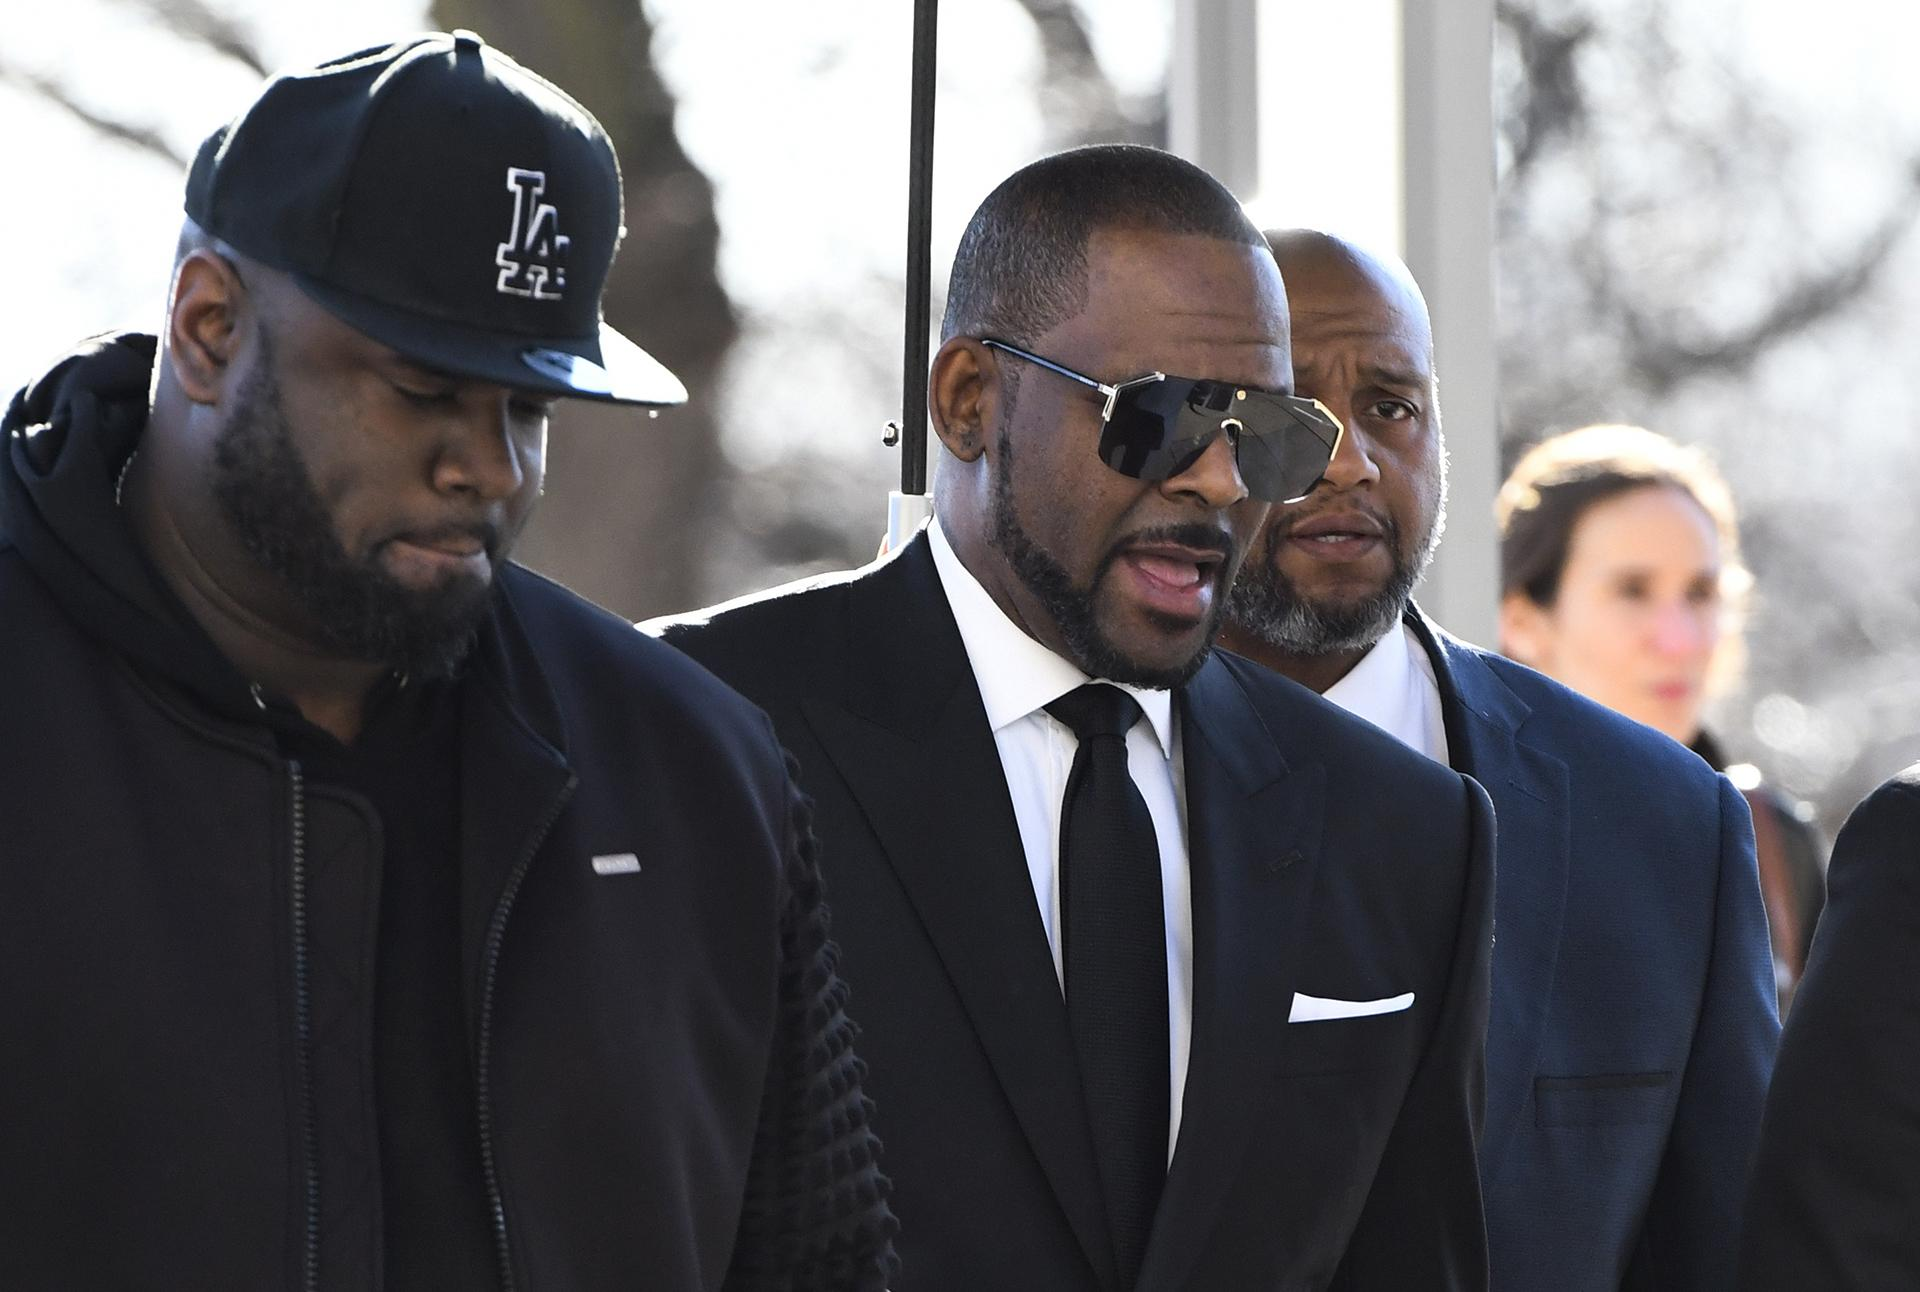 R. Kelly, right, arrives at the Leighton Criminal Court for a hearing on Friday, March 22, 2019, in Chicago. (AP Photo / Matt Marton)